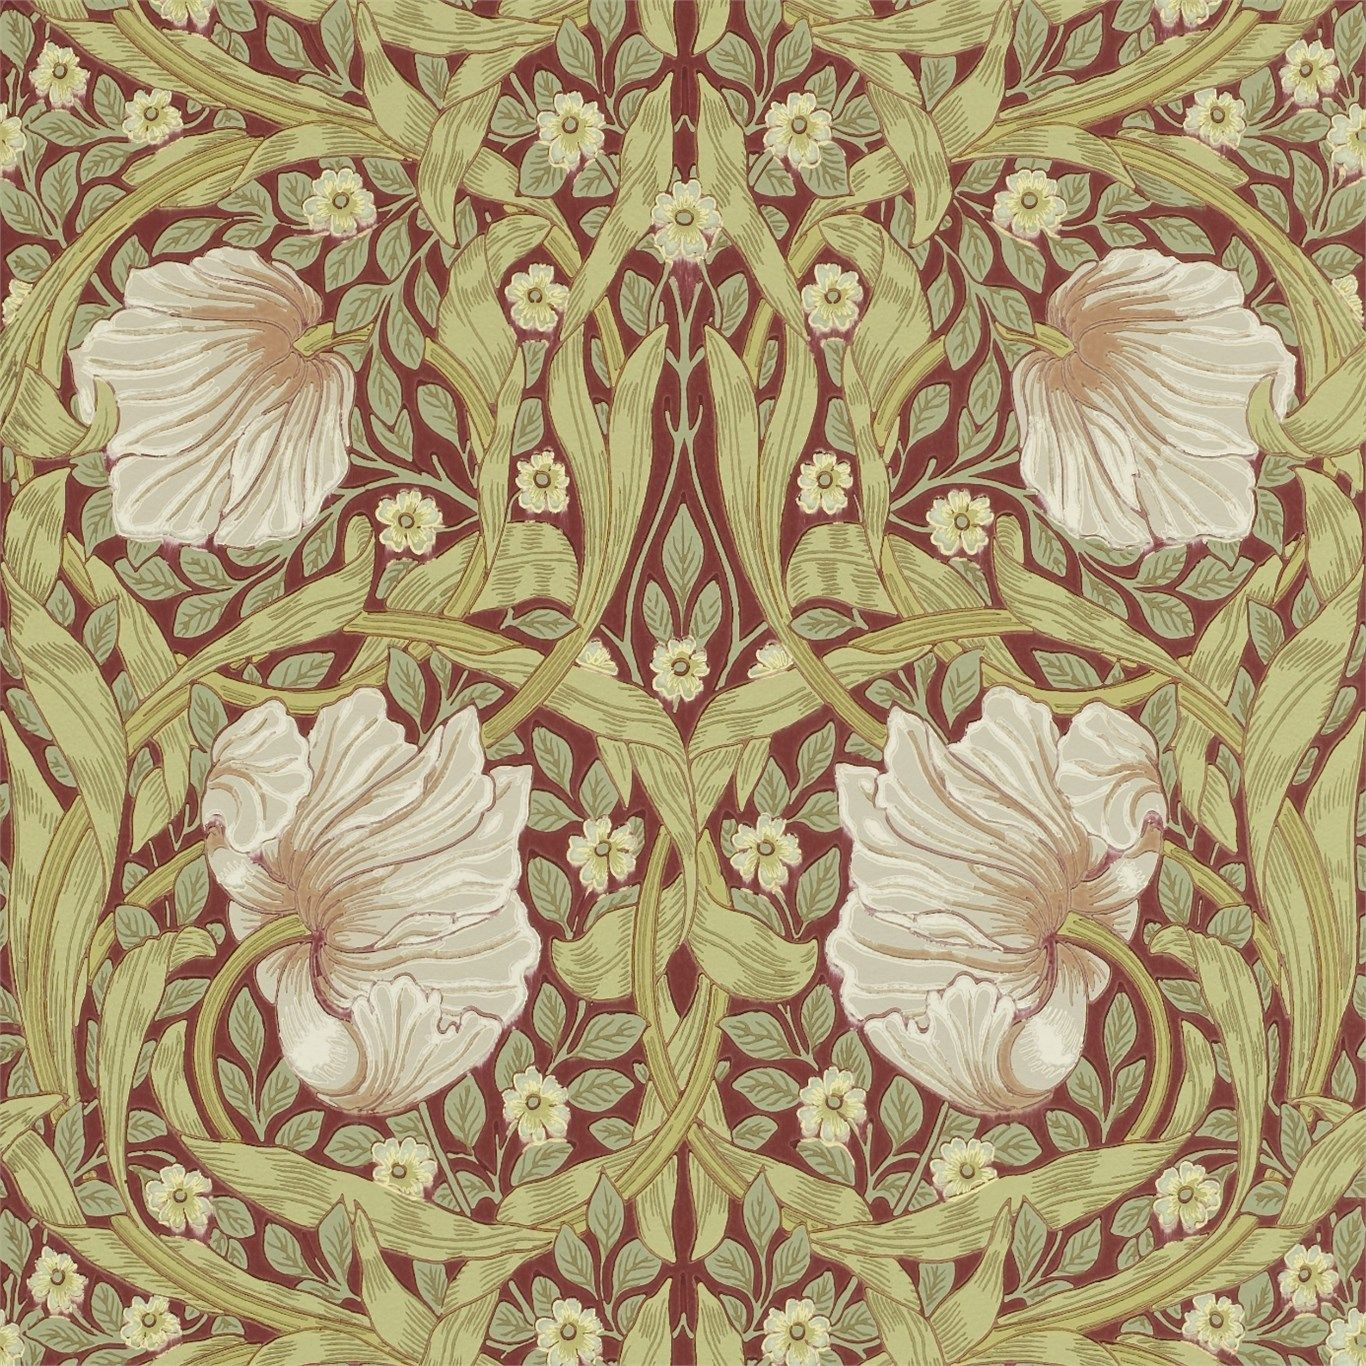 The Original Morris Co Arts And Crafts Fabrics And Wallpaper Designs By William Morris Company Products British Kunstverk Kunstideer William Morris